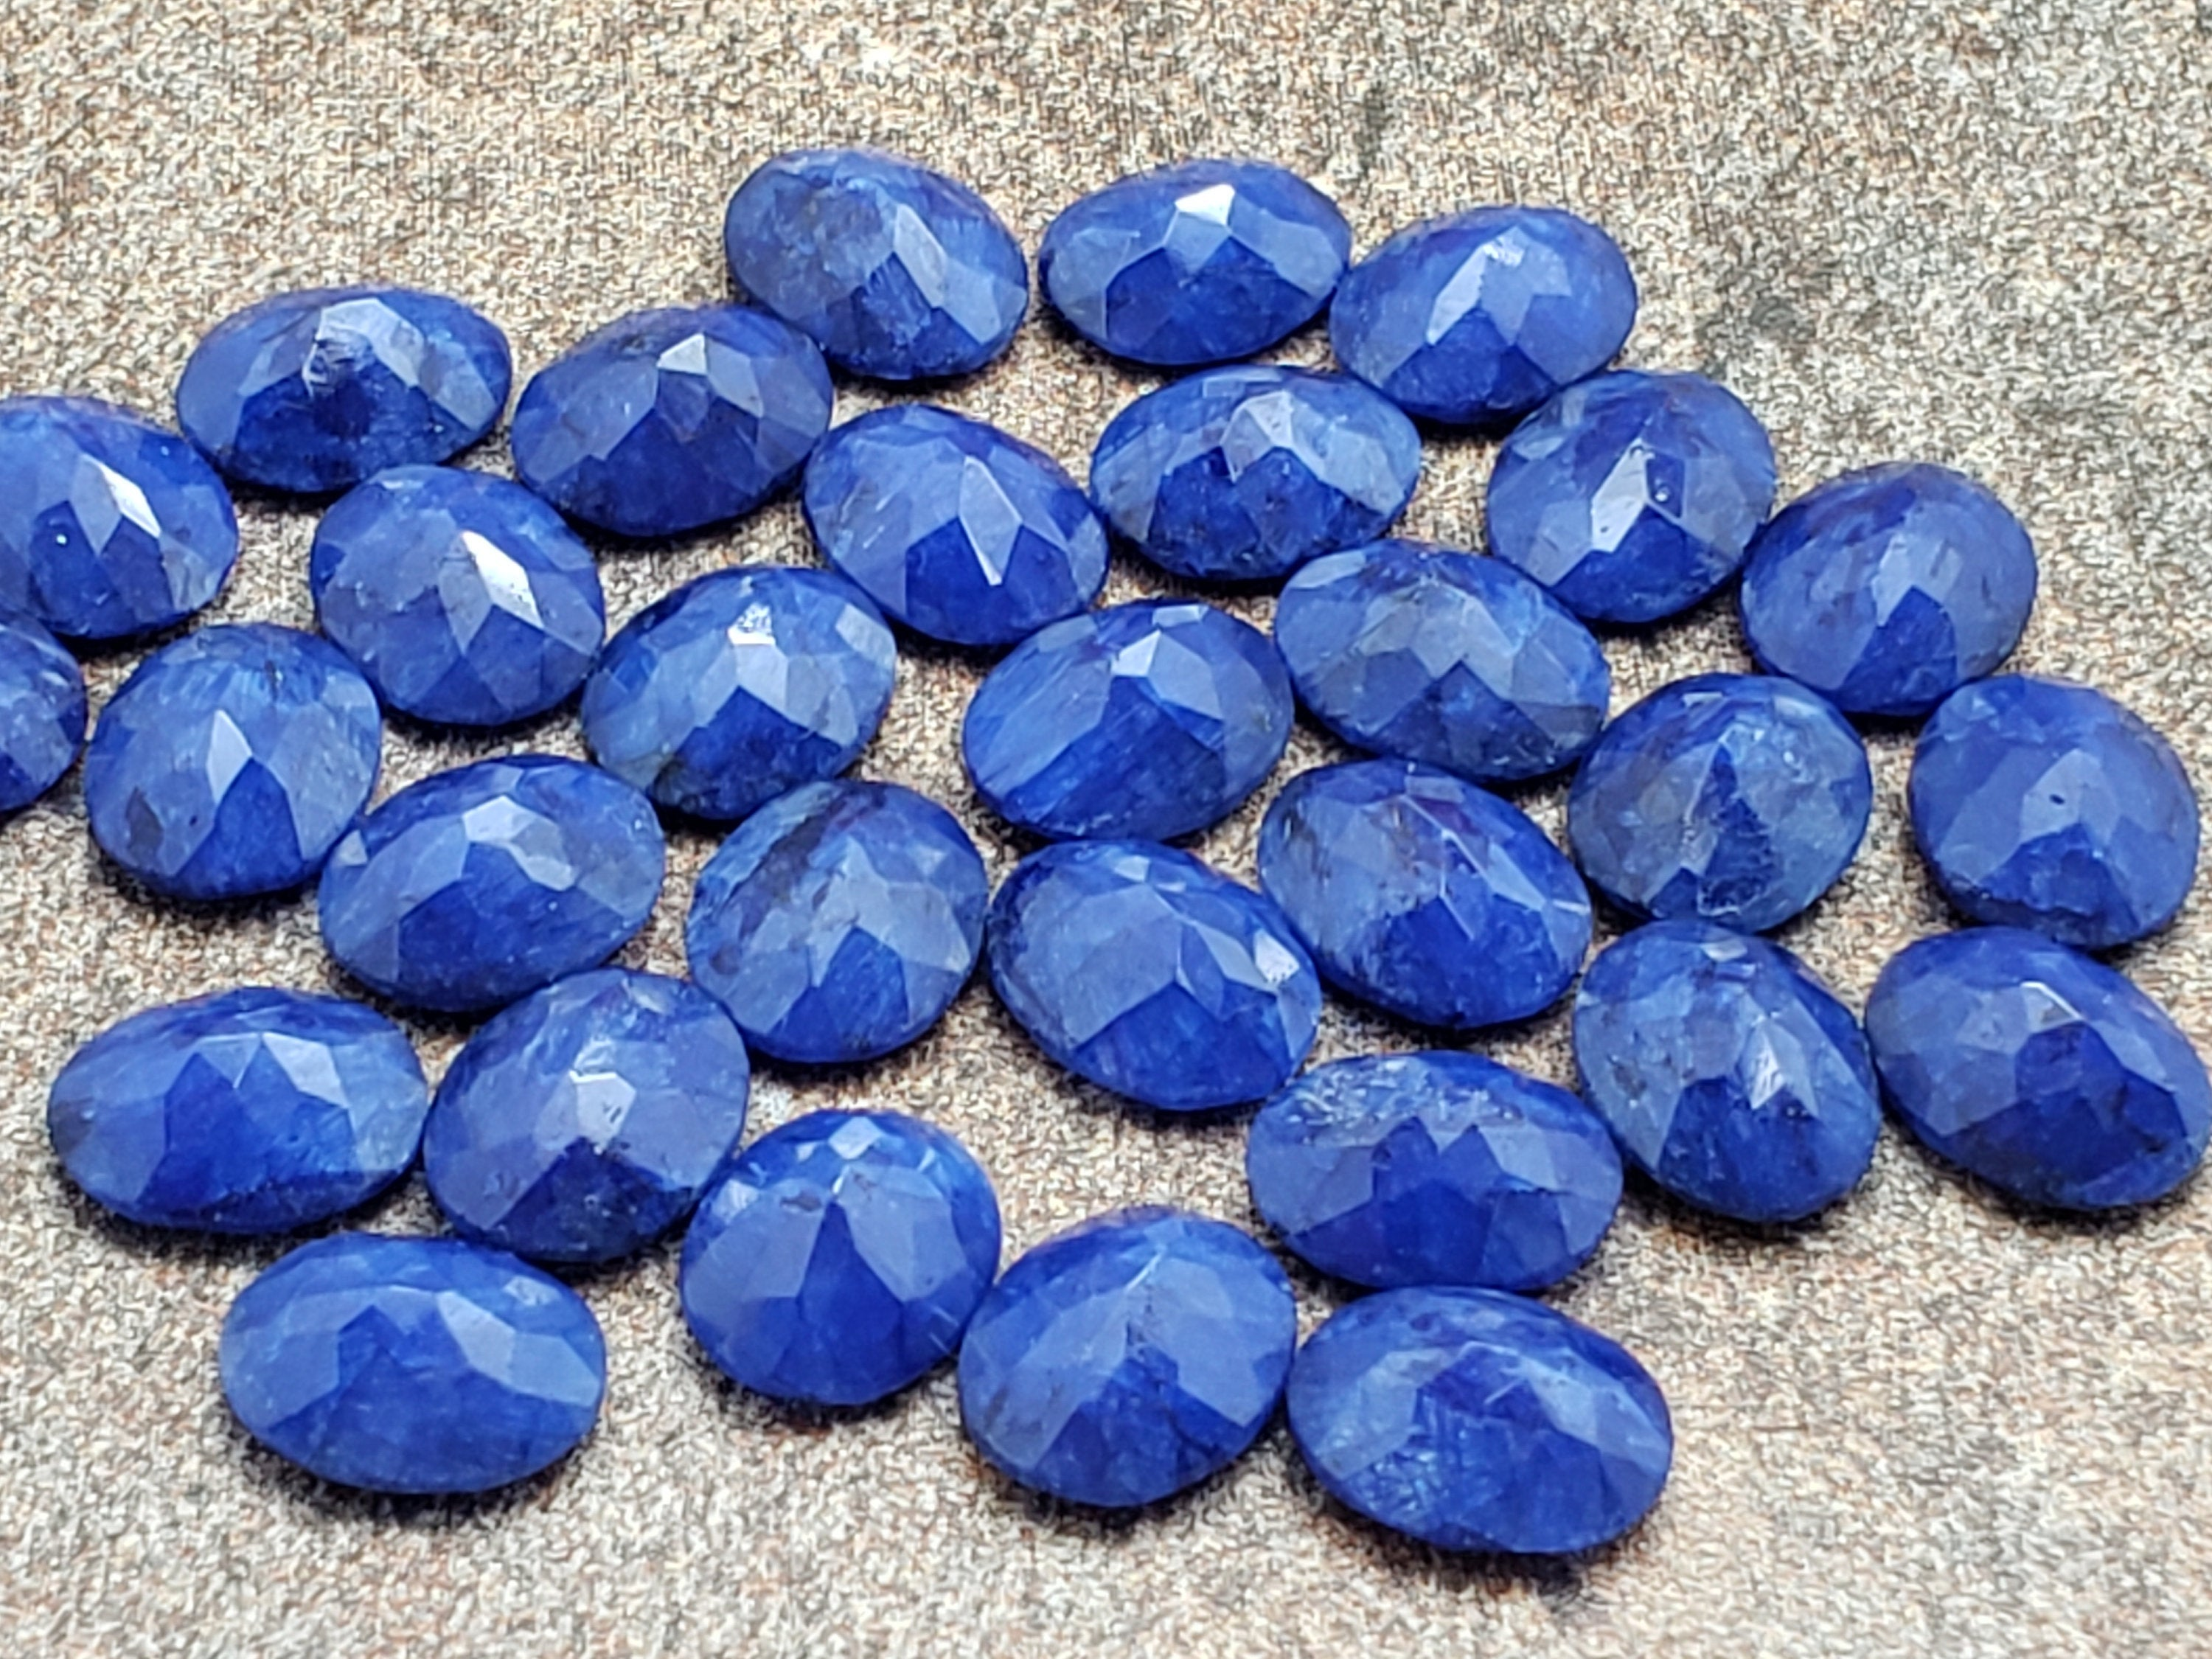 10mm by 8mm Sapphire Faceted Oval Loose Stone